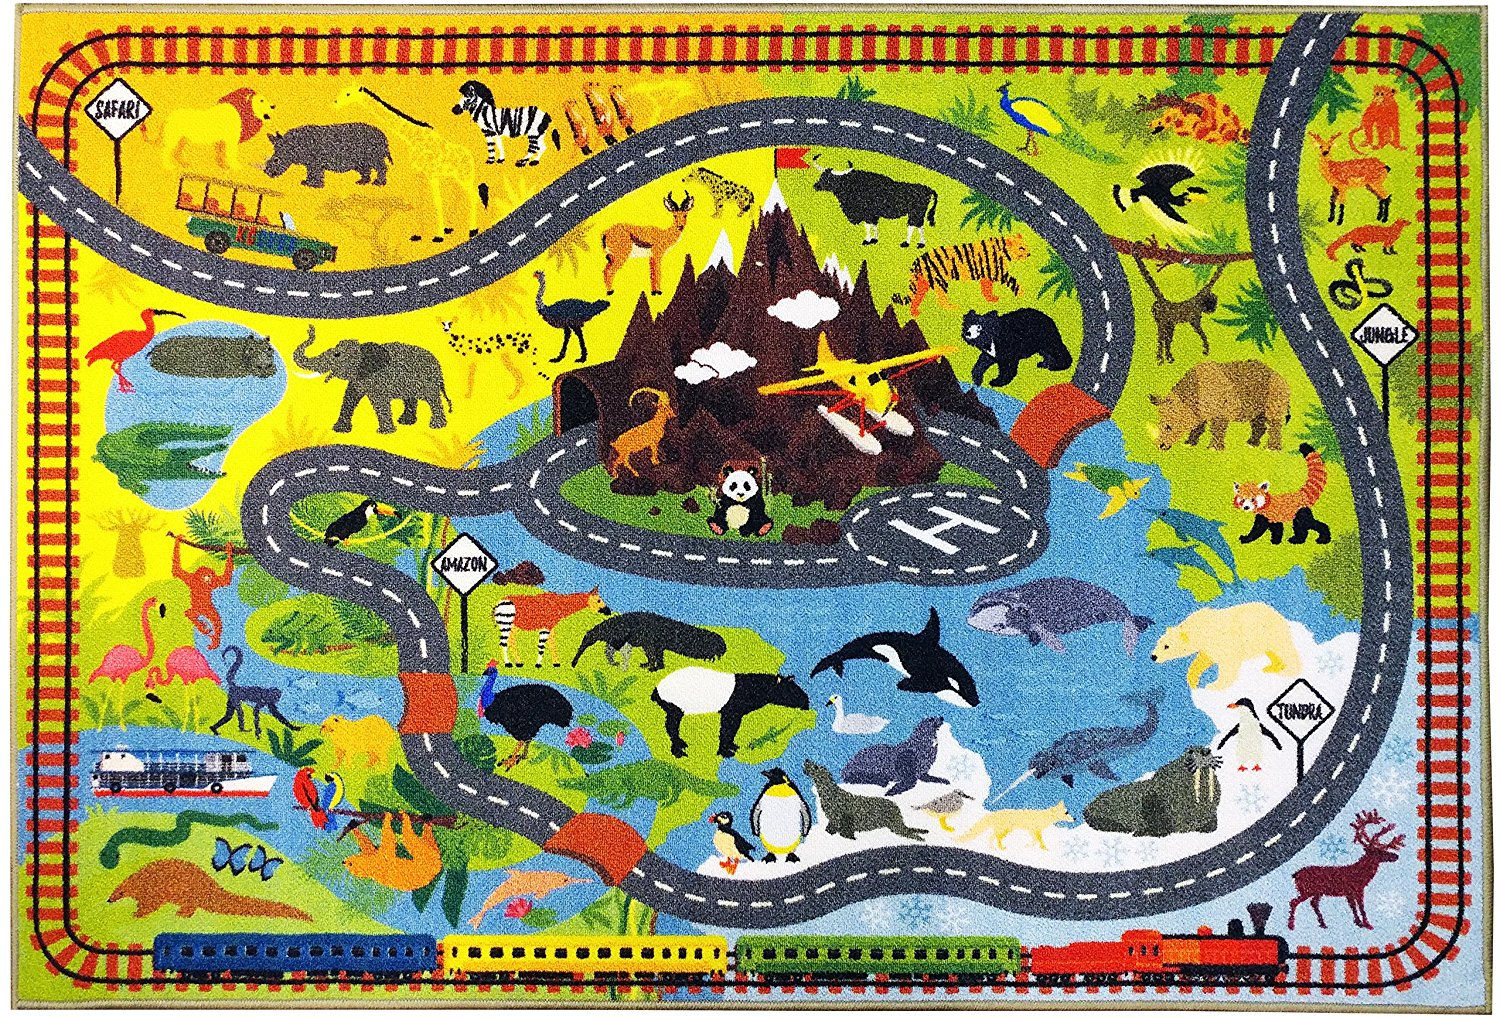 KC CUBS Playtime Collection Animal Safari Road Map Educational Learning Area Rug Carpet for Kids and Children... by KC Cubs